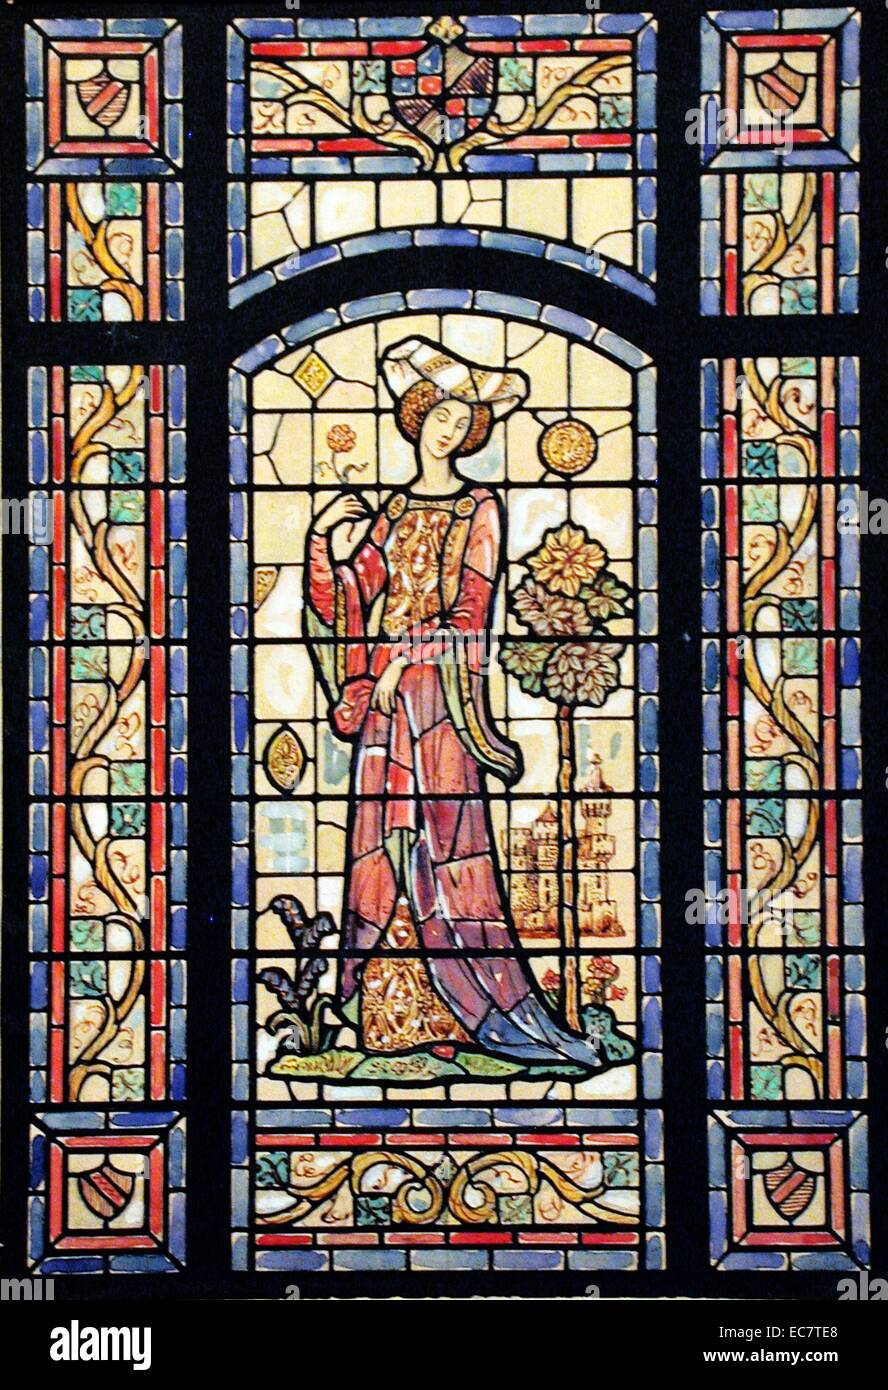 A stained glass window for C.F. Bohn Residence in Grosse Pointe, Michigan. It shows a romantic Medieval lady with - Stock Image